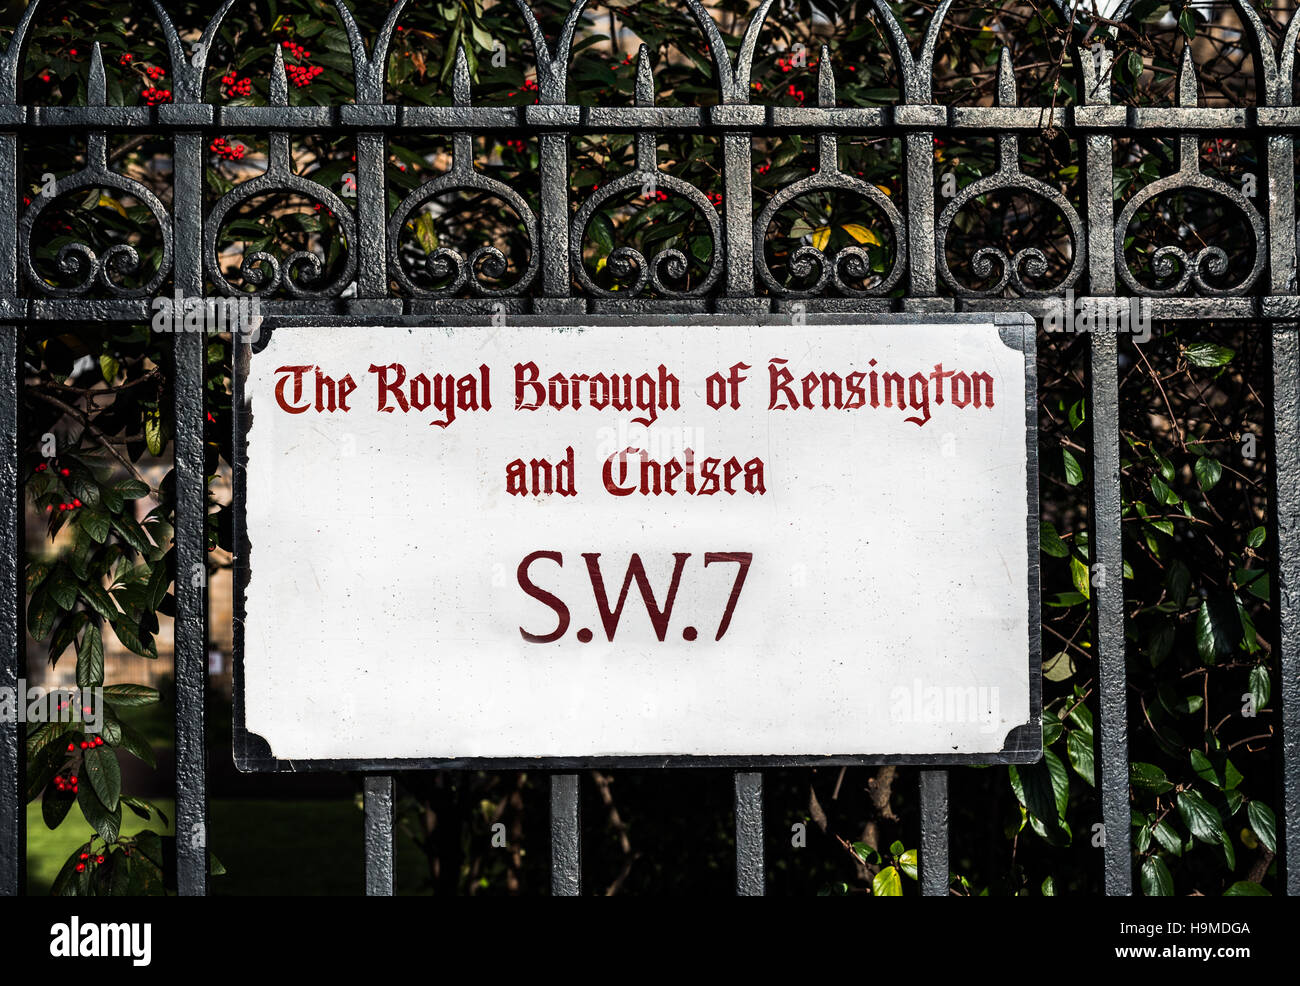 A street Royal Borough Of Kensington And Chelsea sign in London. - Stock Image